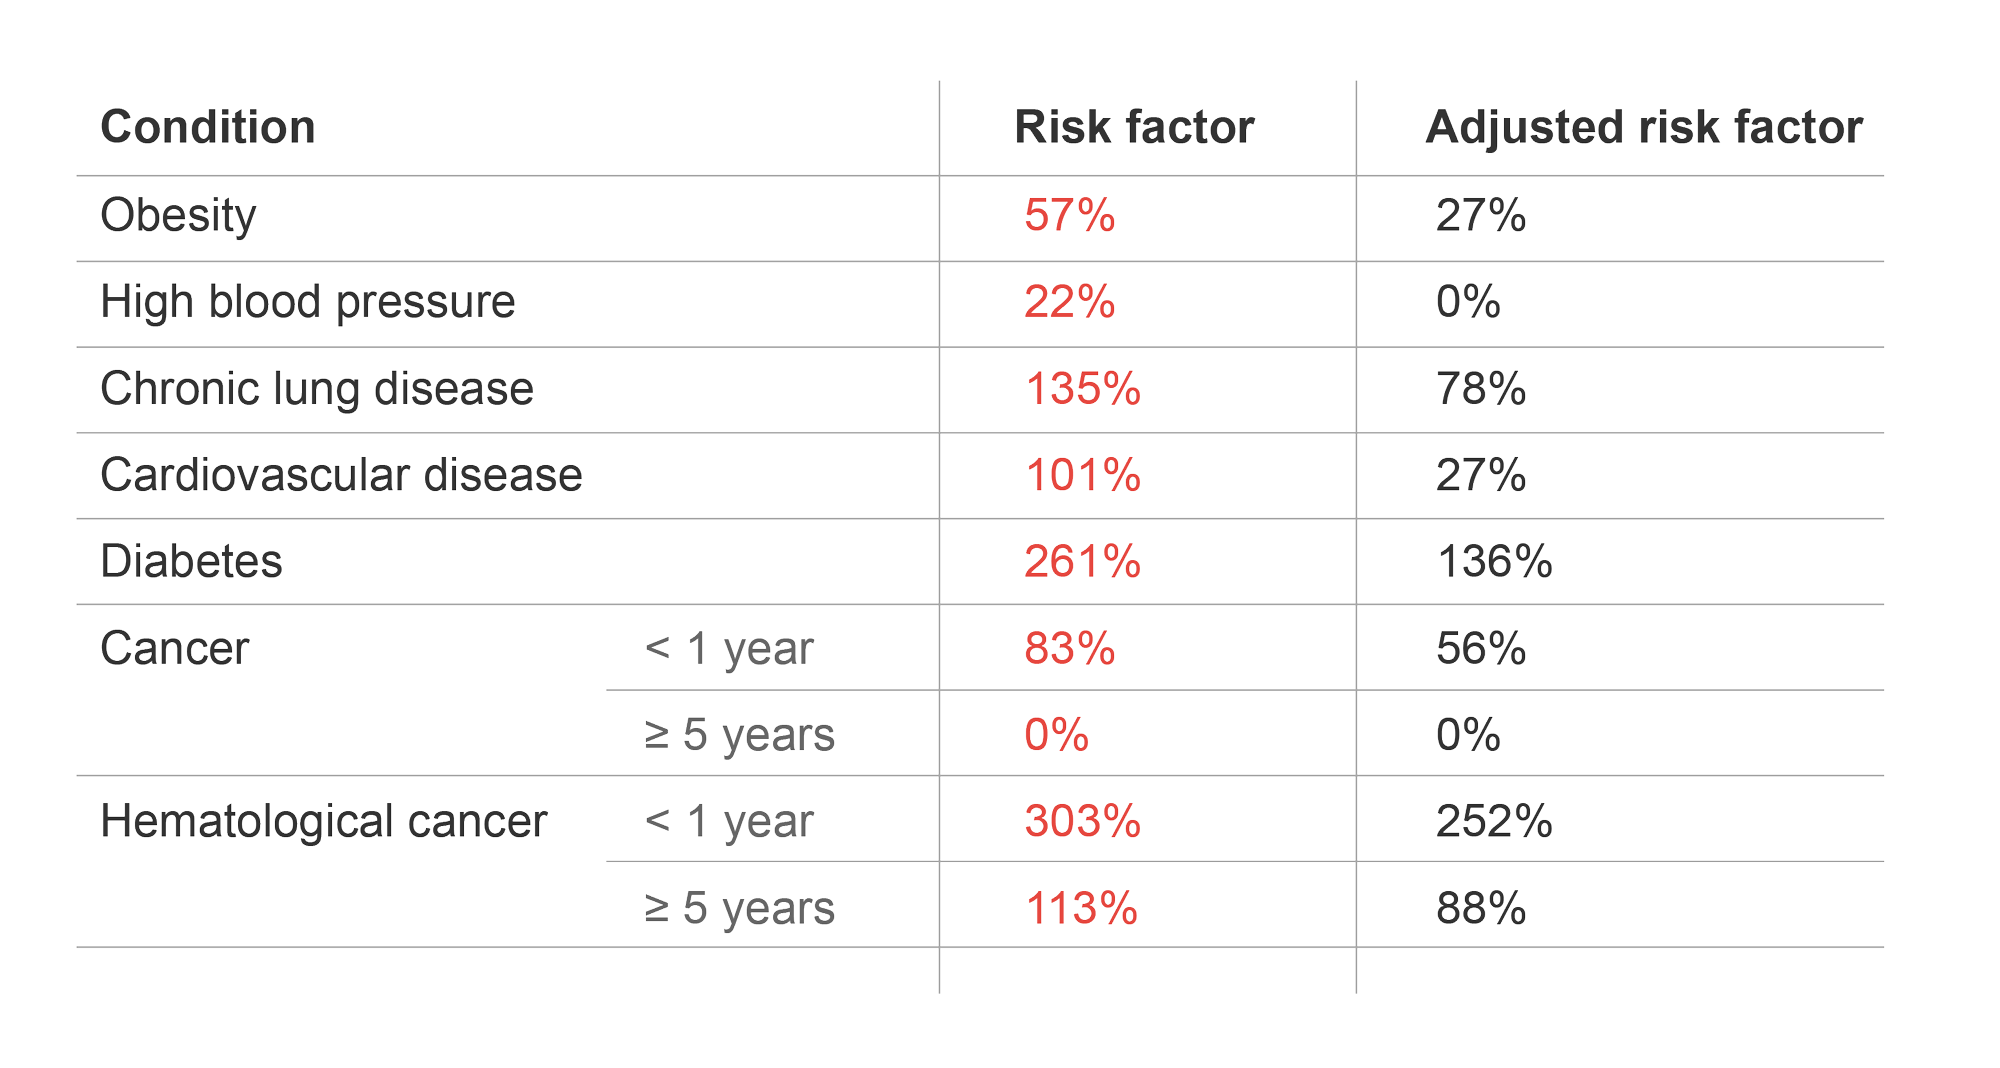 table of common preexisting conditions and the associated increased risk of death due to COVID-19.